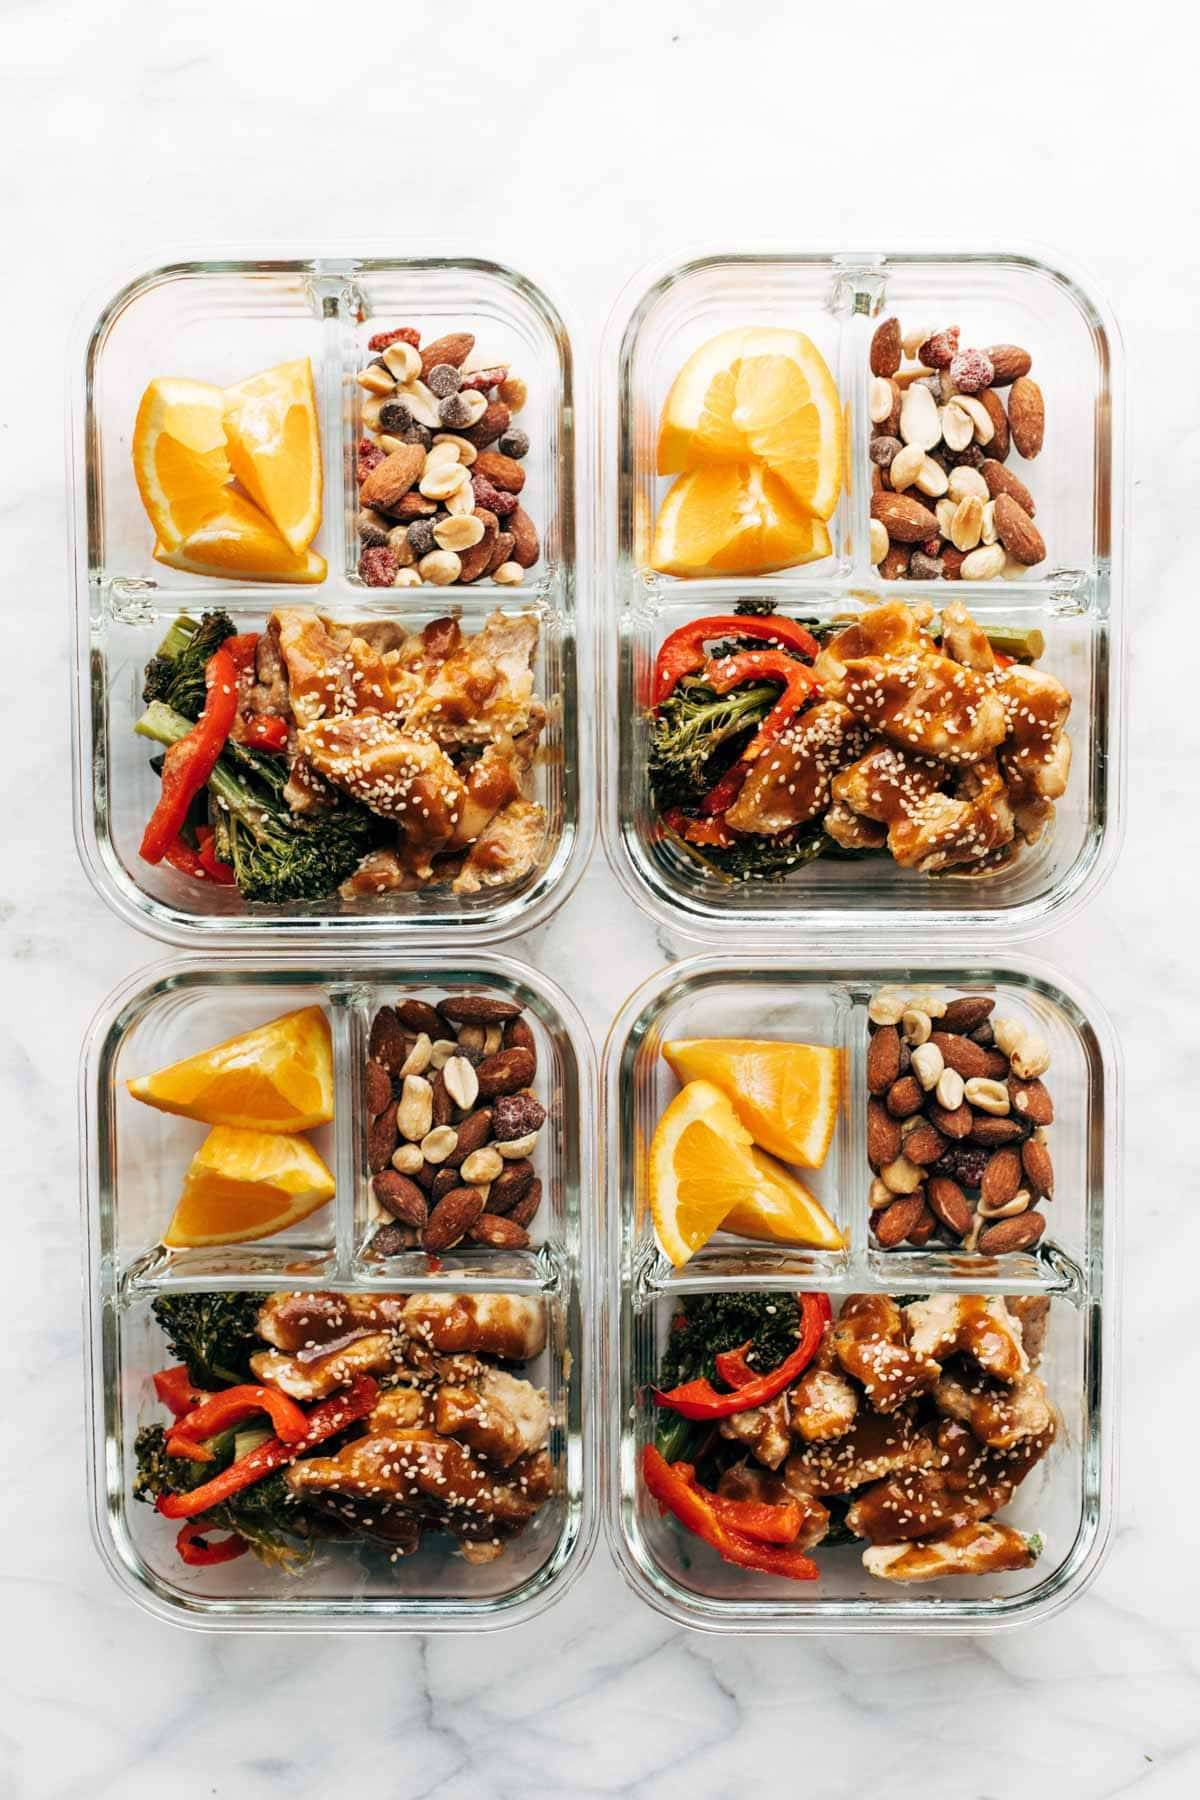 Sheet pan garlic ginger chicken broccoli recipe pinch of yum garlic ginger chicken and broccoli in meal prep containers forumfinder Image collections